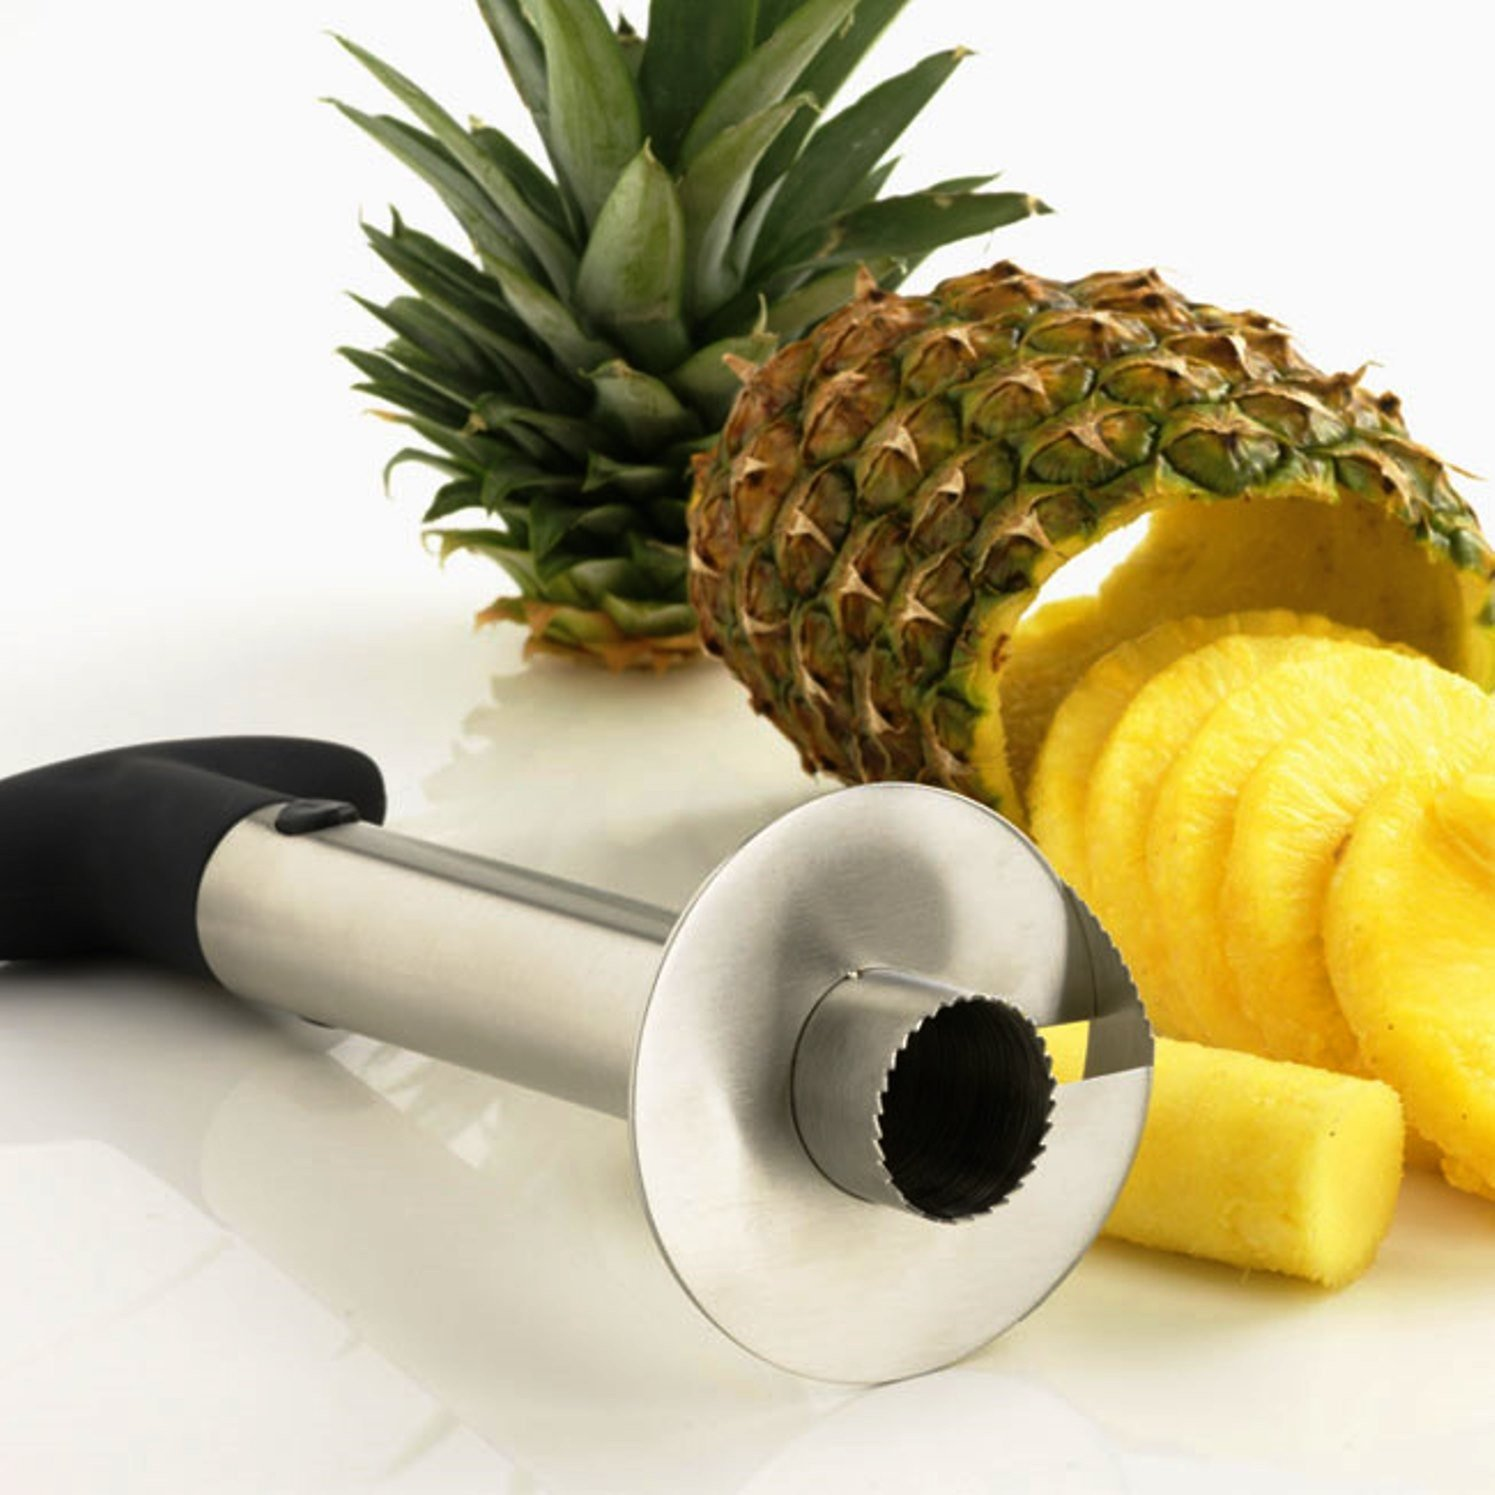 Experty Stainless Steel Pineapple Peeler Corer Slicer Kitchen Gadget - All In One Tool